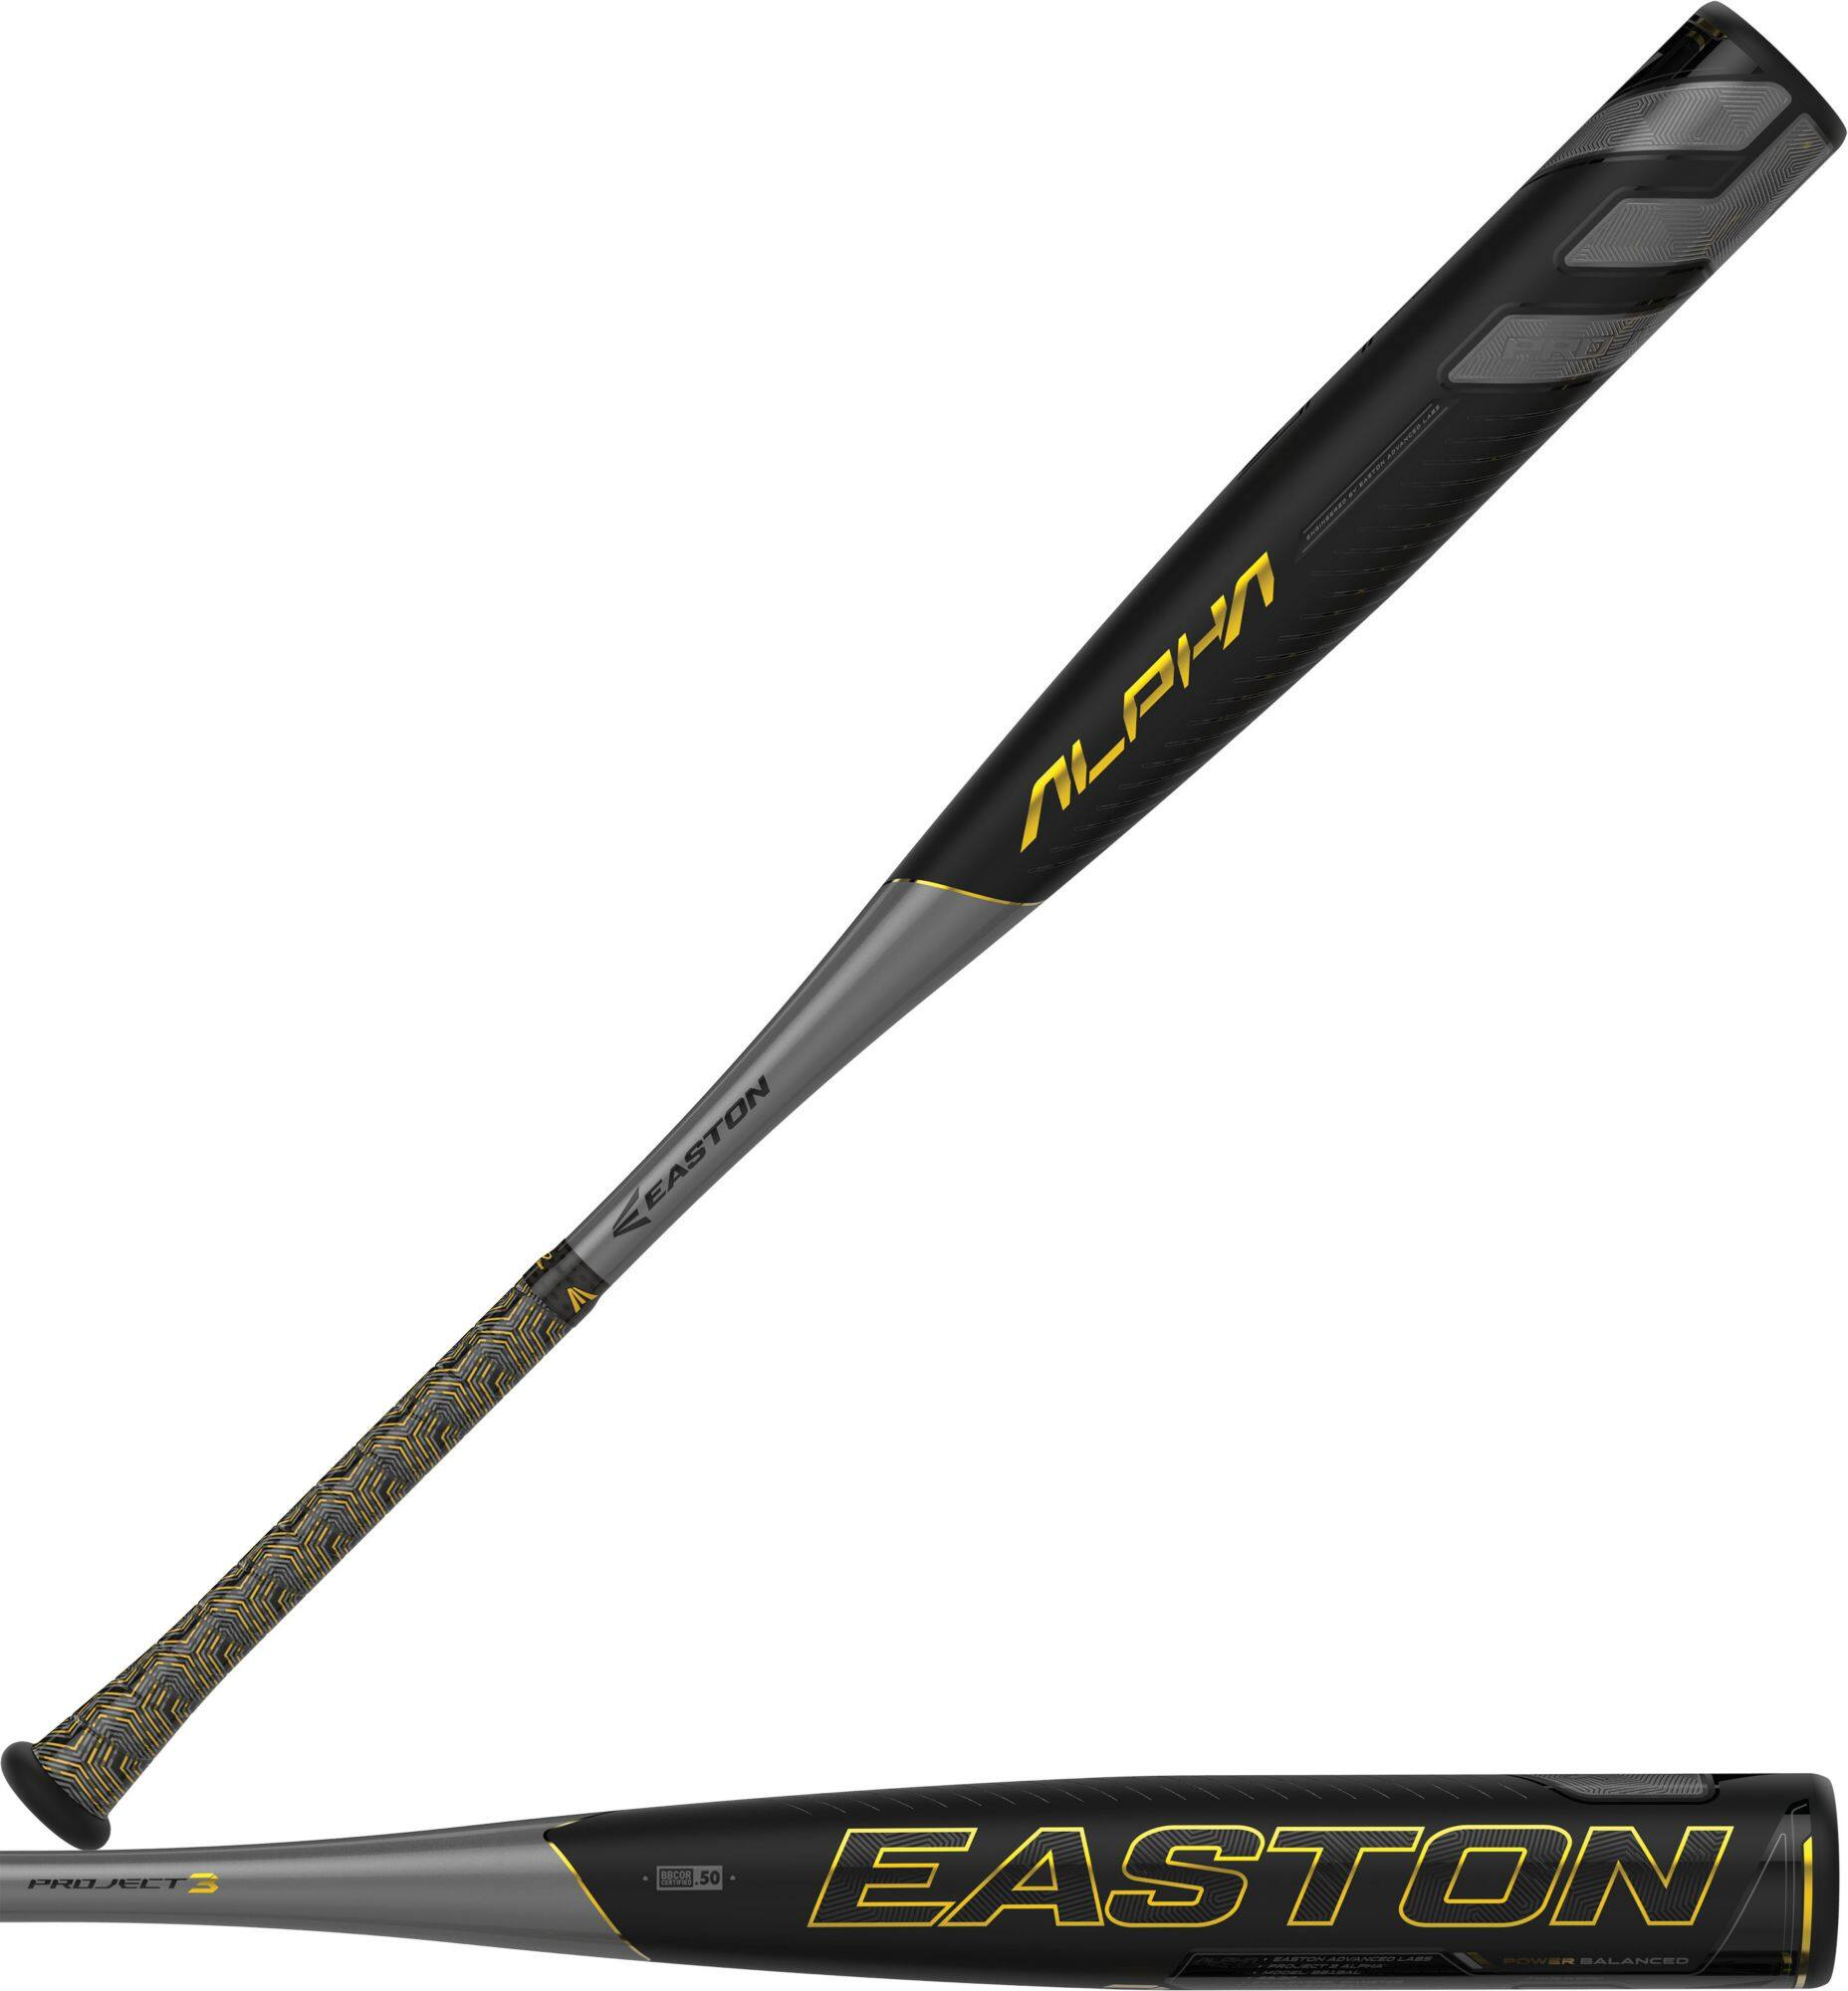 Dick's Sporting Goods: Up to 40% Off Closeout Bats- Easton Project 3 Alpha BBCOR Bat 2019 for $159.99 & More